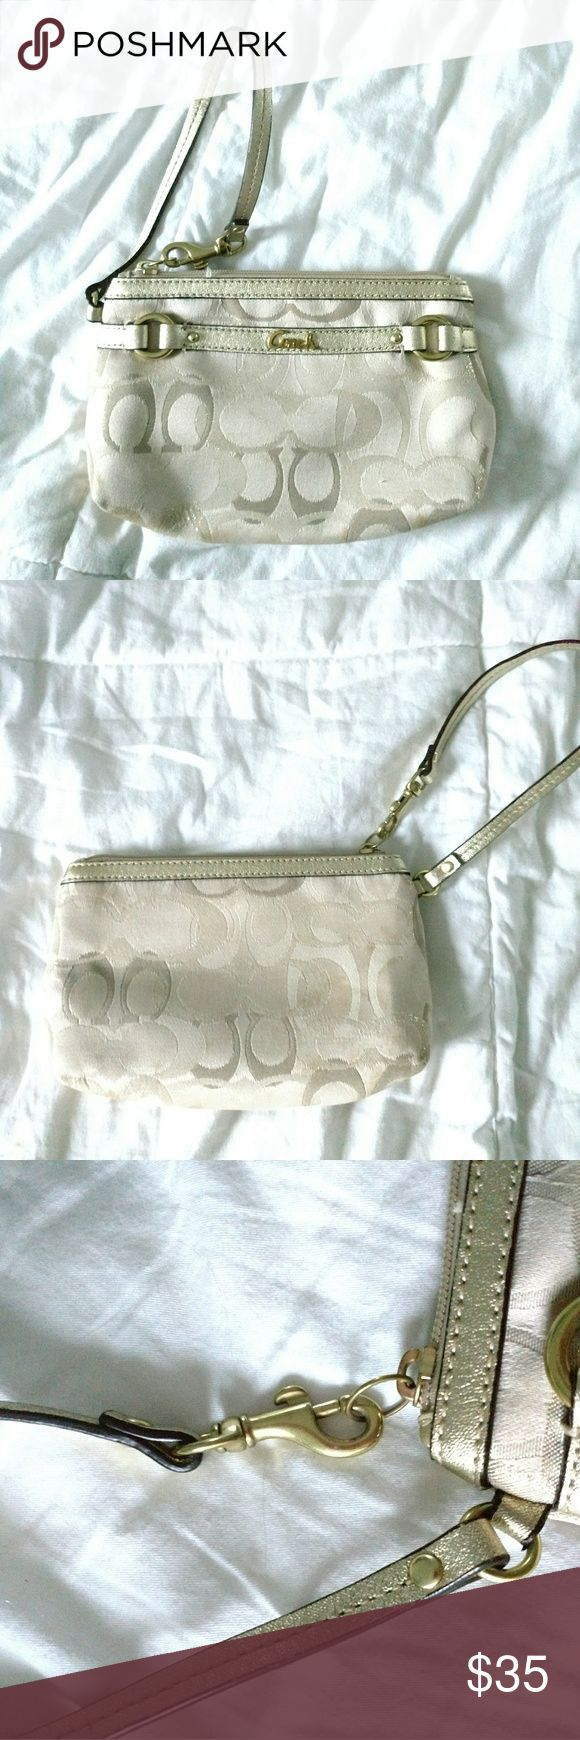 Authentic Coach Clutch Authentic Coach clutch in excellent condition. No frays, tears, or stains. Inside is a lavender color with small inner pocket. Coach Bags Clutches & Wristlets